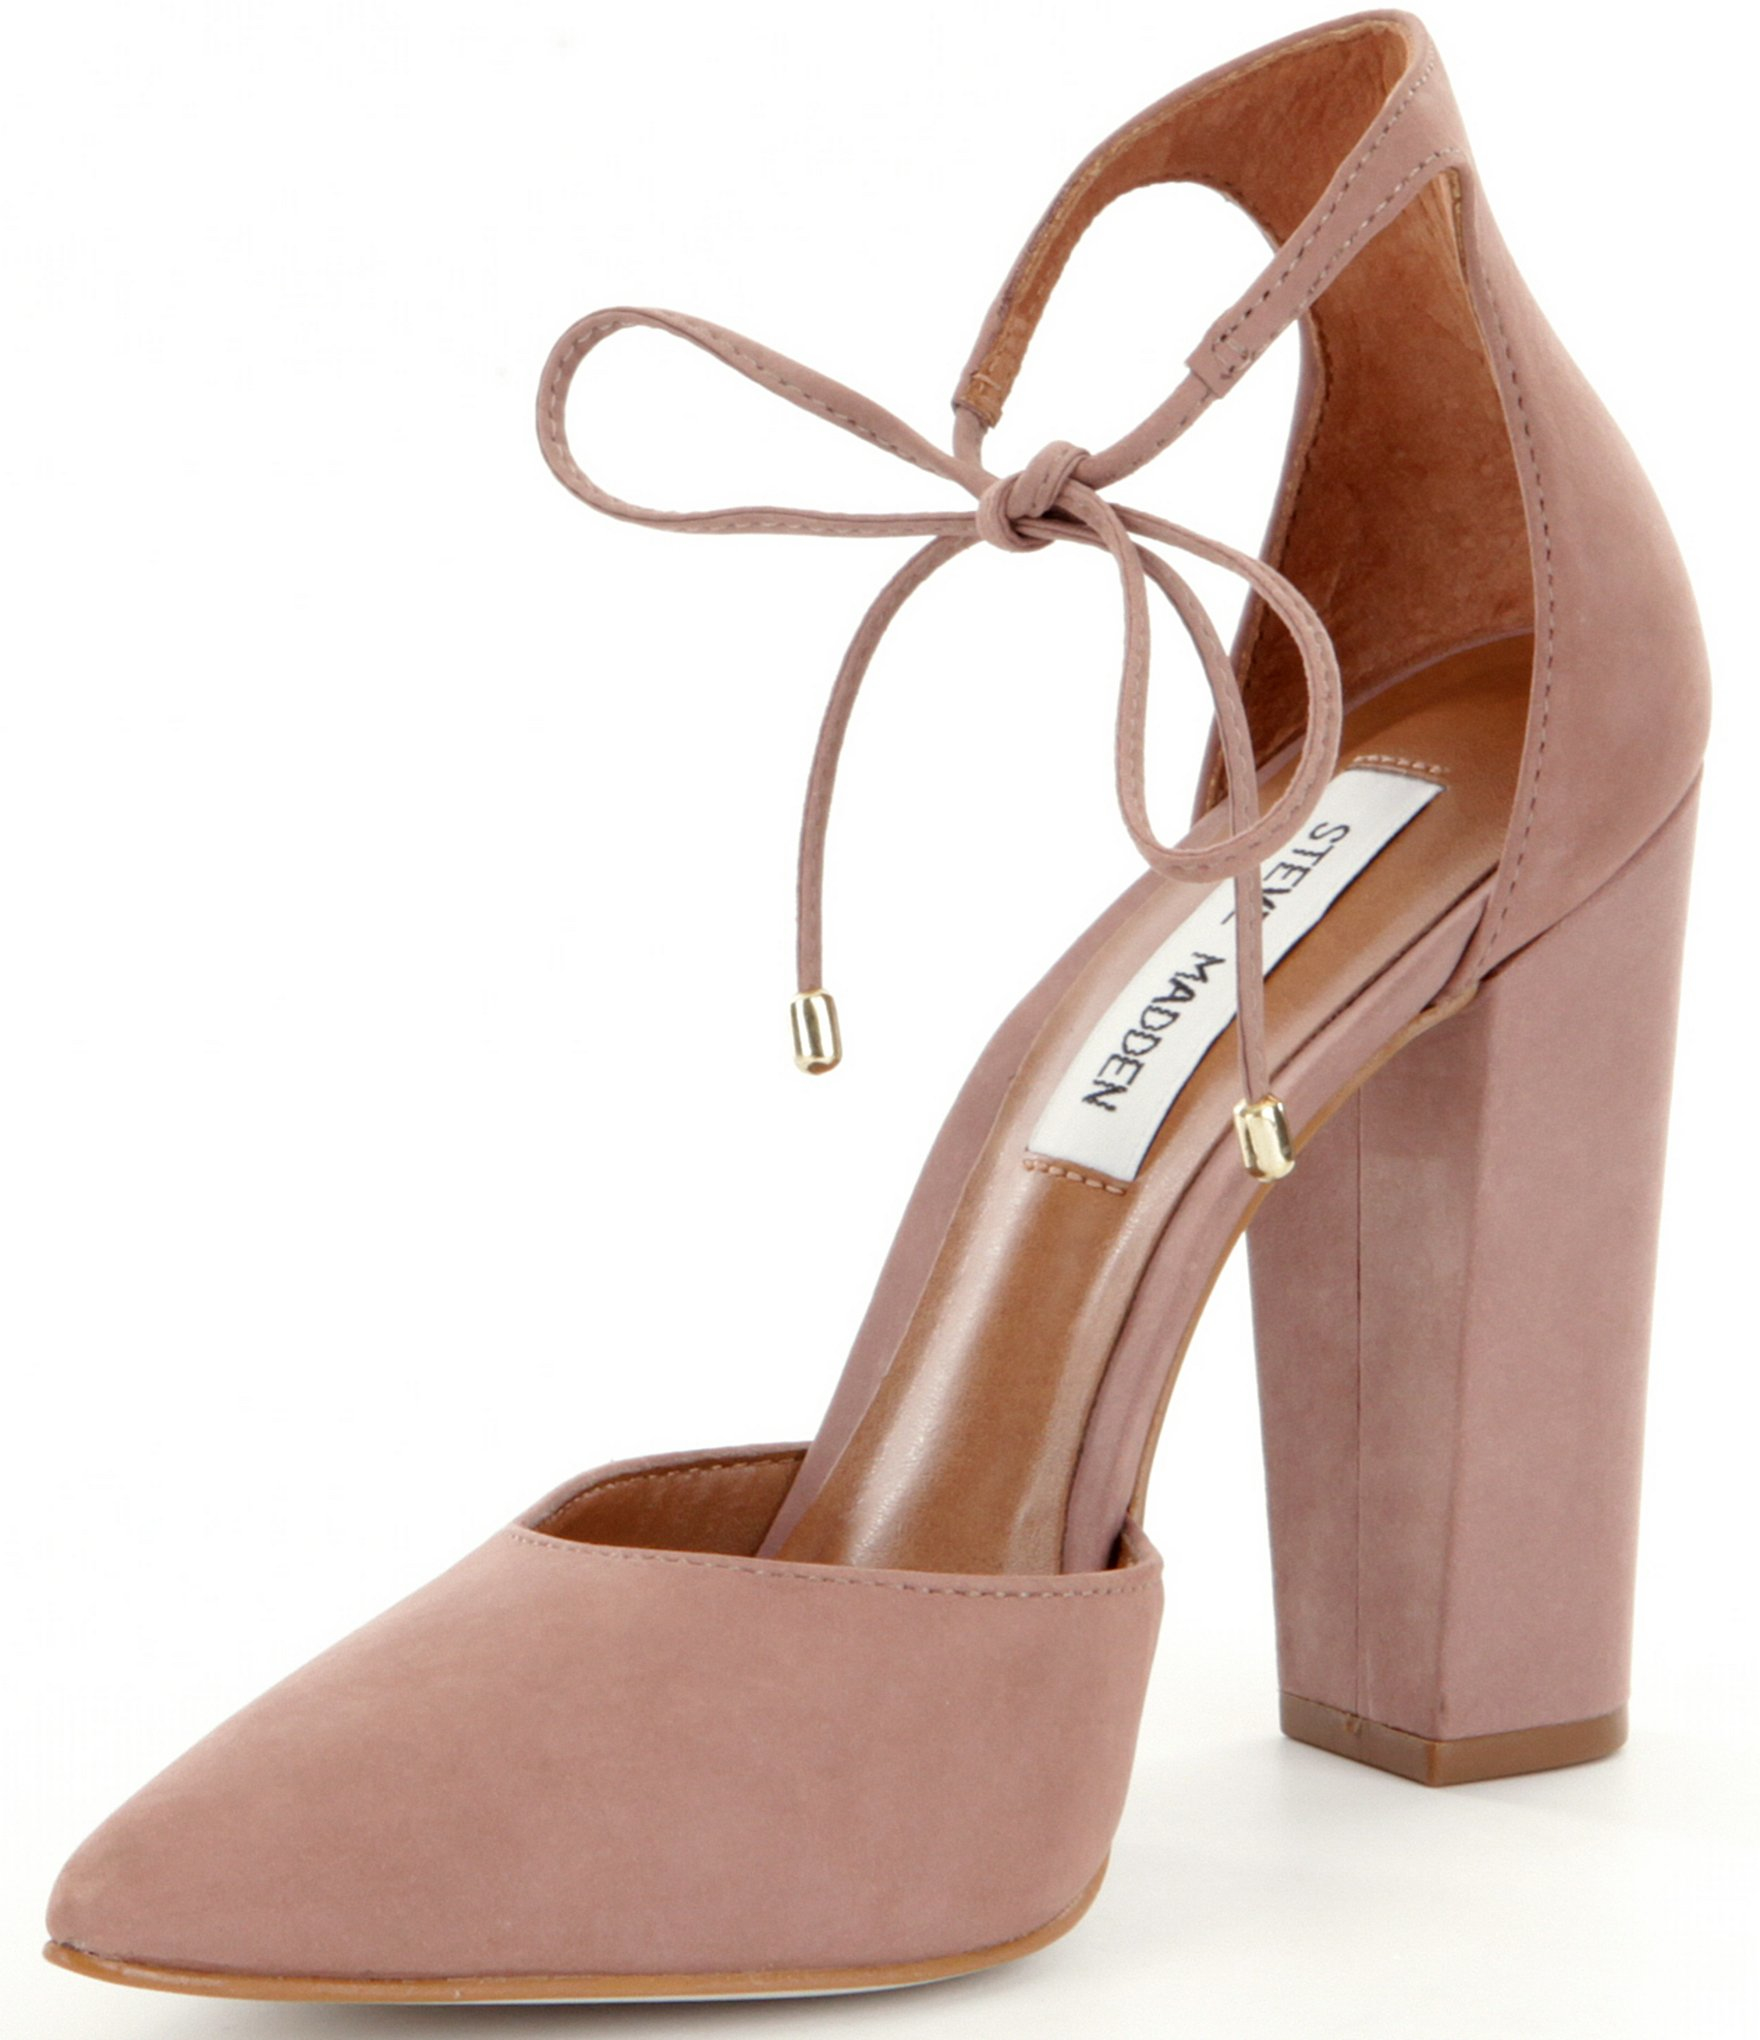 771e1d24c58 Lyst - Steve Madden Pampered Pointed-toe Tie Closure Pumps in Pink